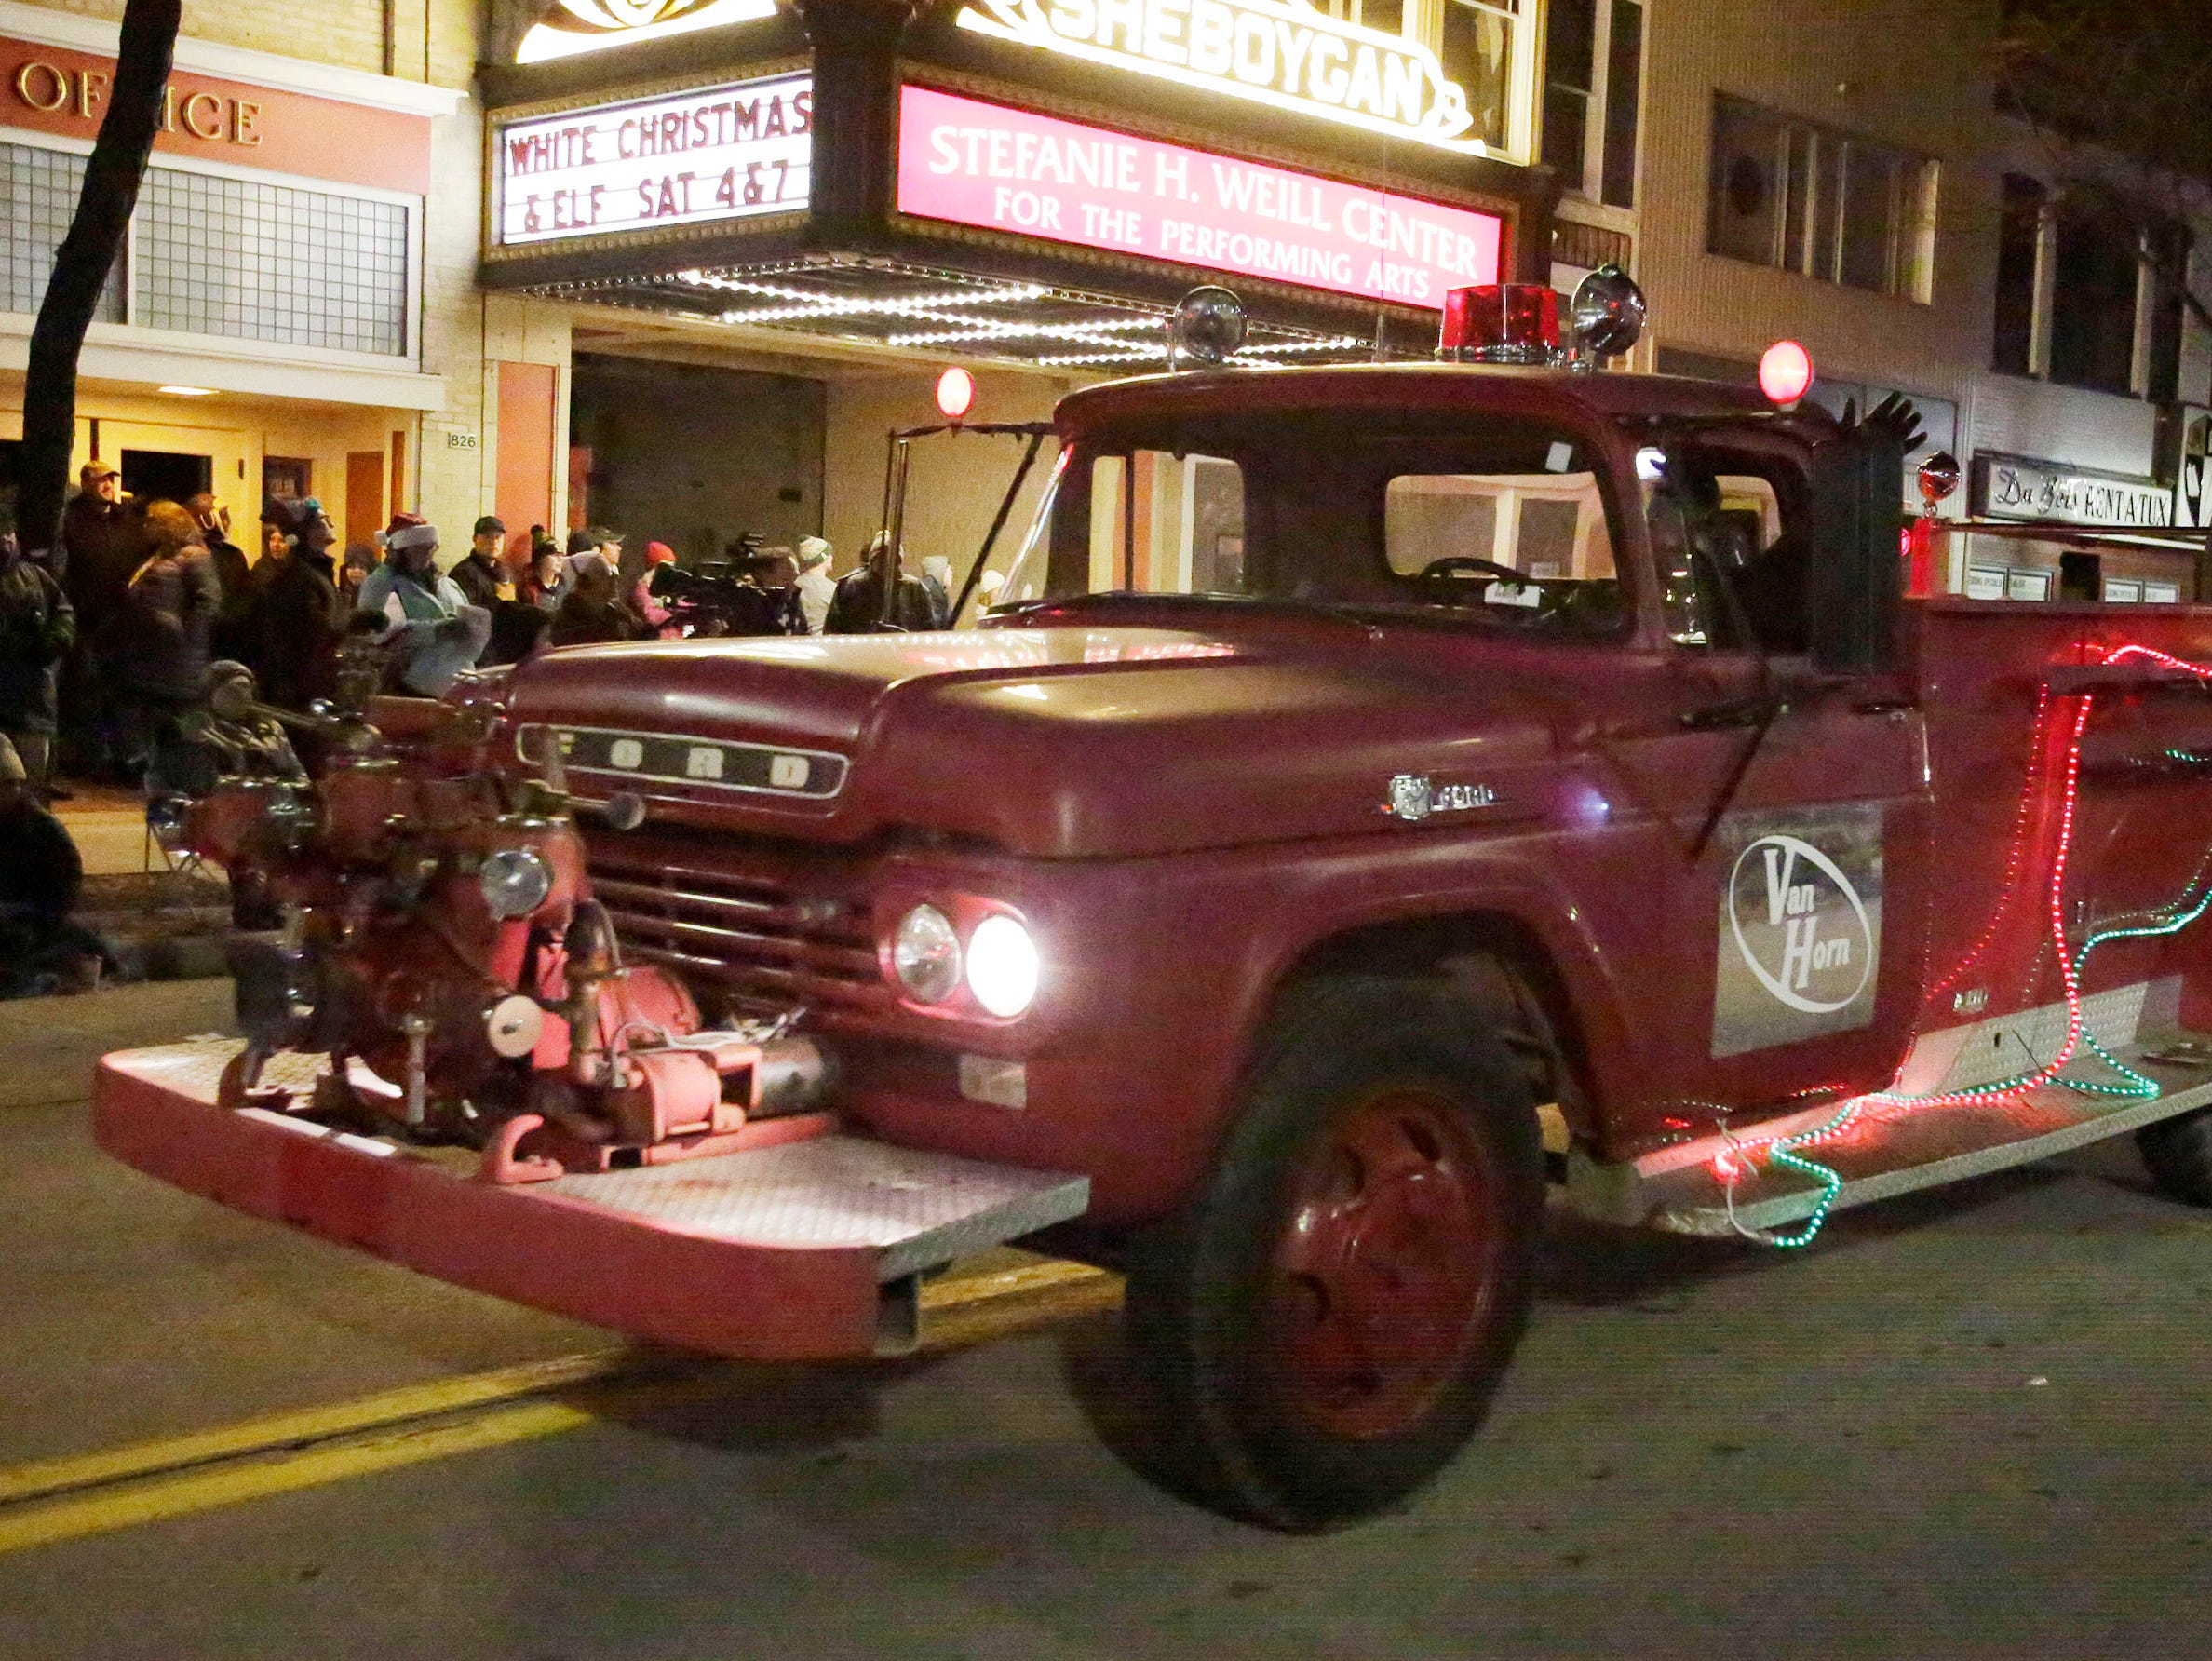 A vintage fire truck rolls along during the 26th Annual Jaycees Holiday Parade, Sunday, November 25, 2018 in Sheboygan, Wis.